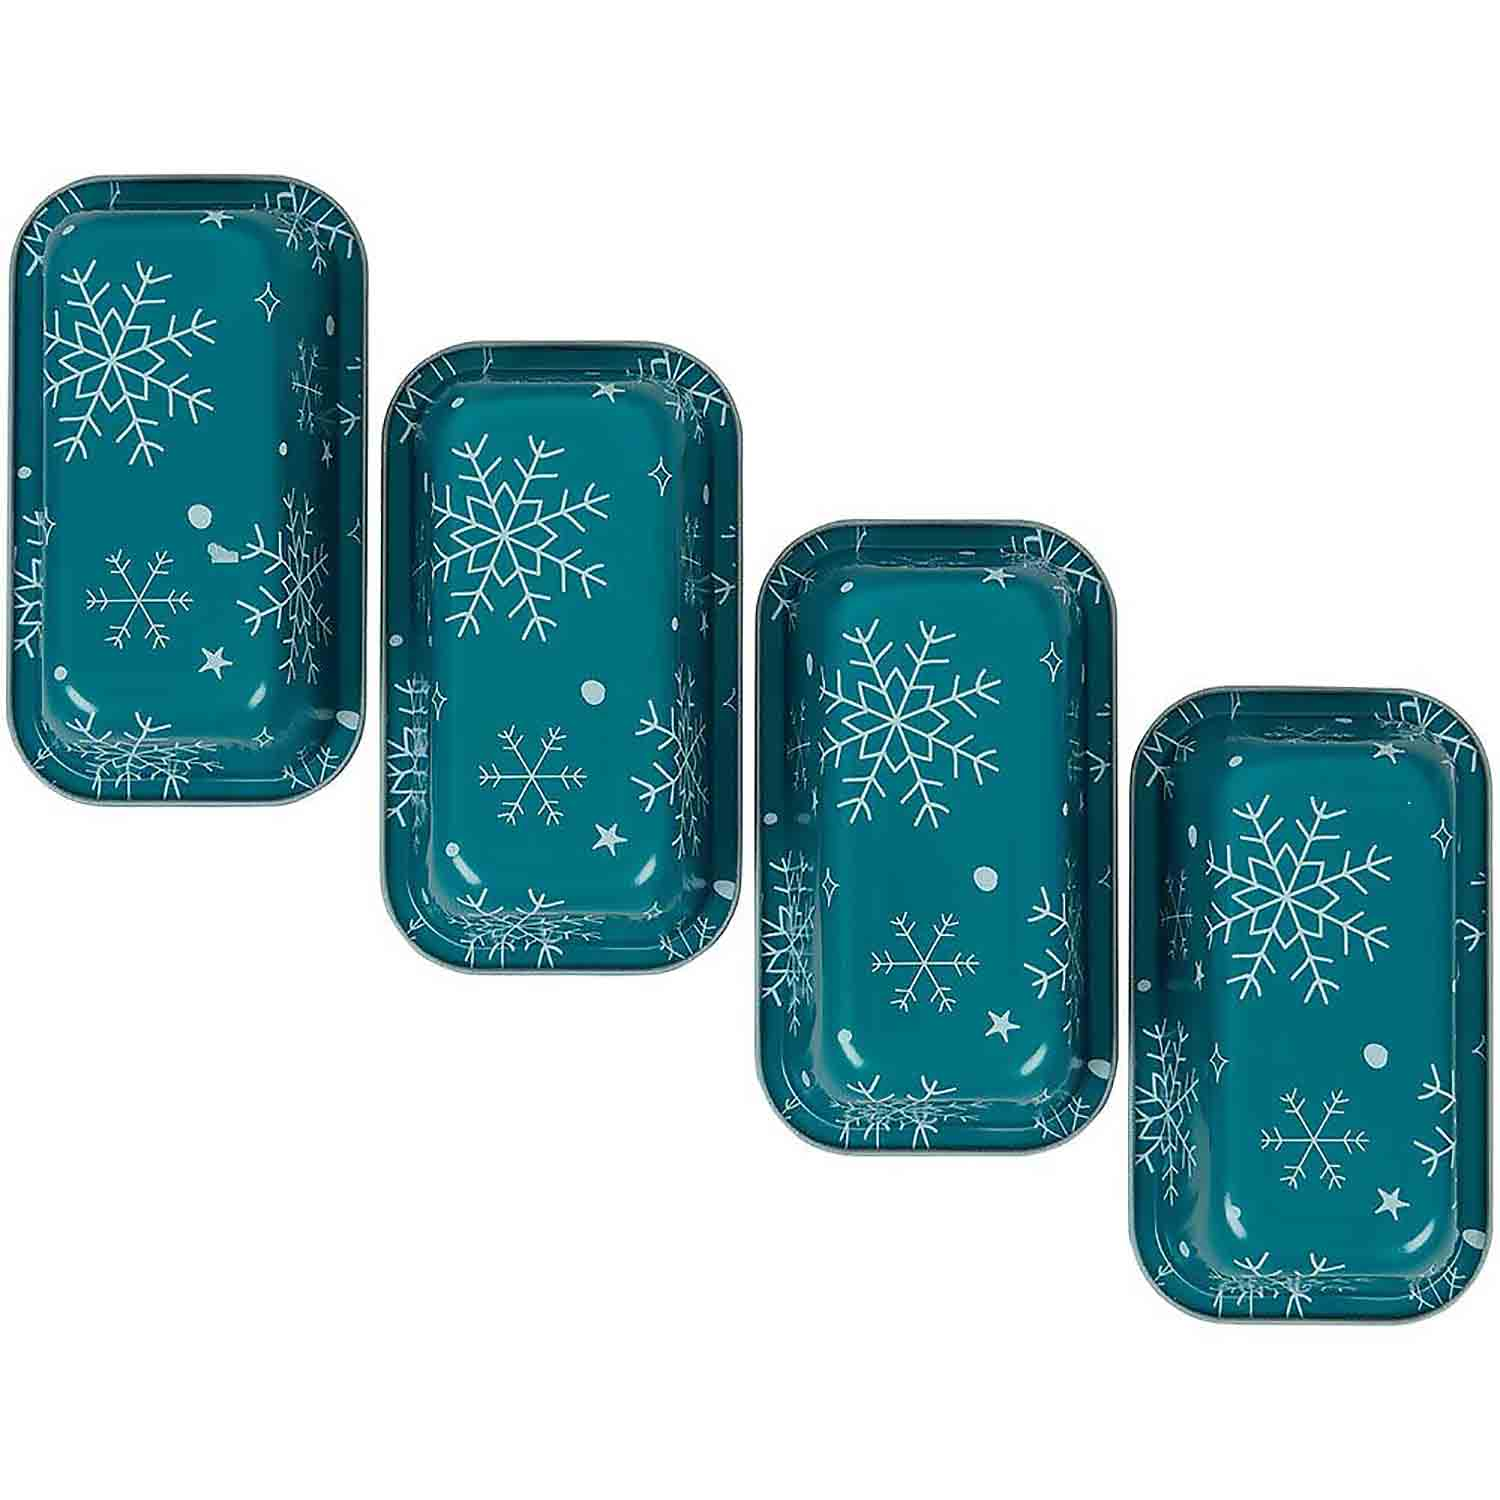 Snowflake Mini Loaf Pan Set